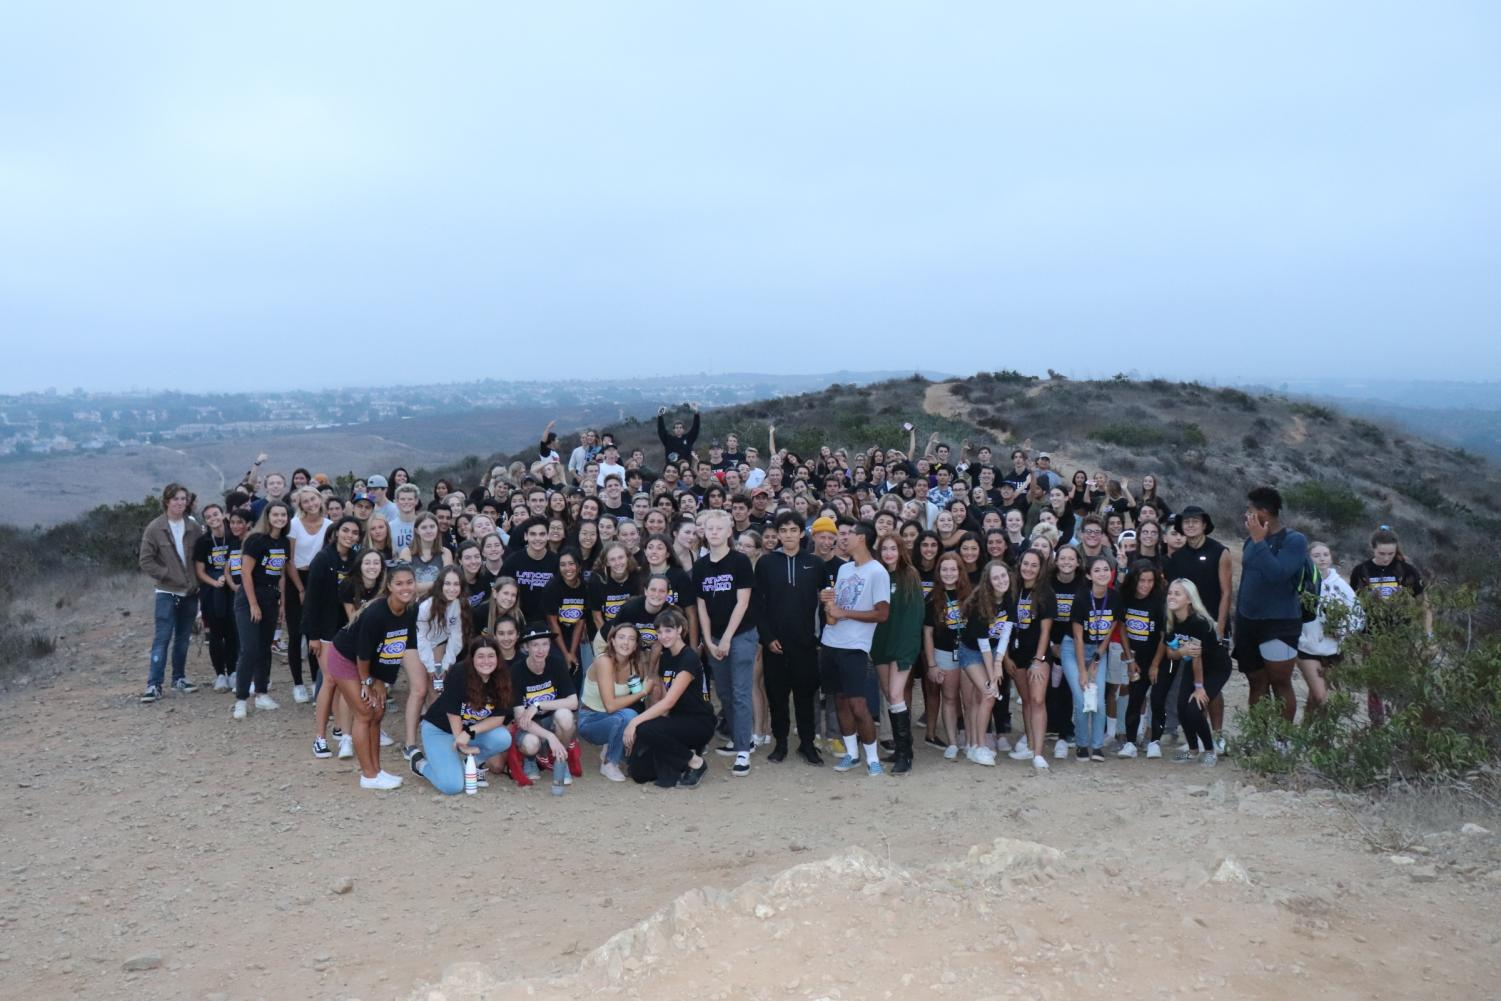 The class of 2020 at Senior Sunrise. This annual event conists of the senior class viewing the sunrise from the top of Calavera Mountain. Photo courtesy of Hailey Rutter.